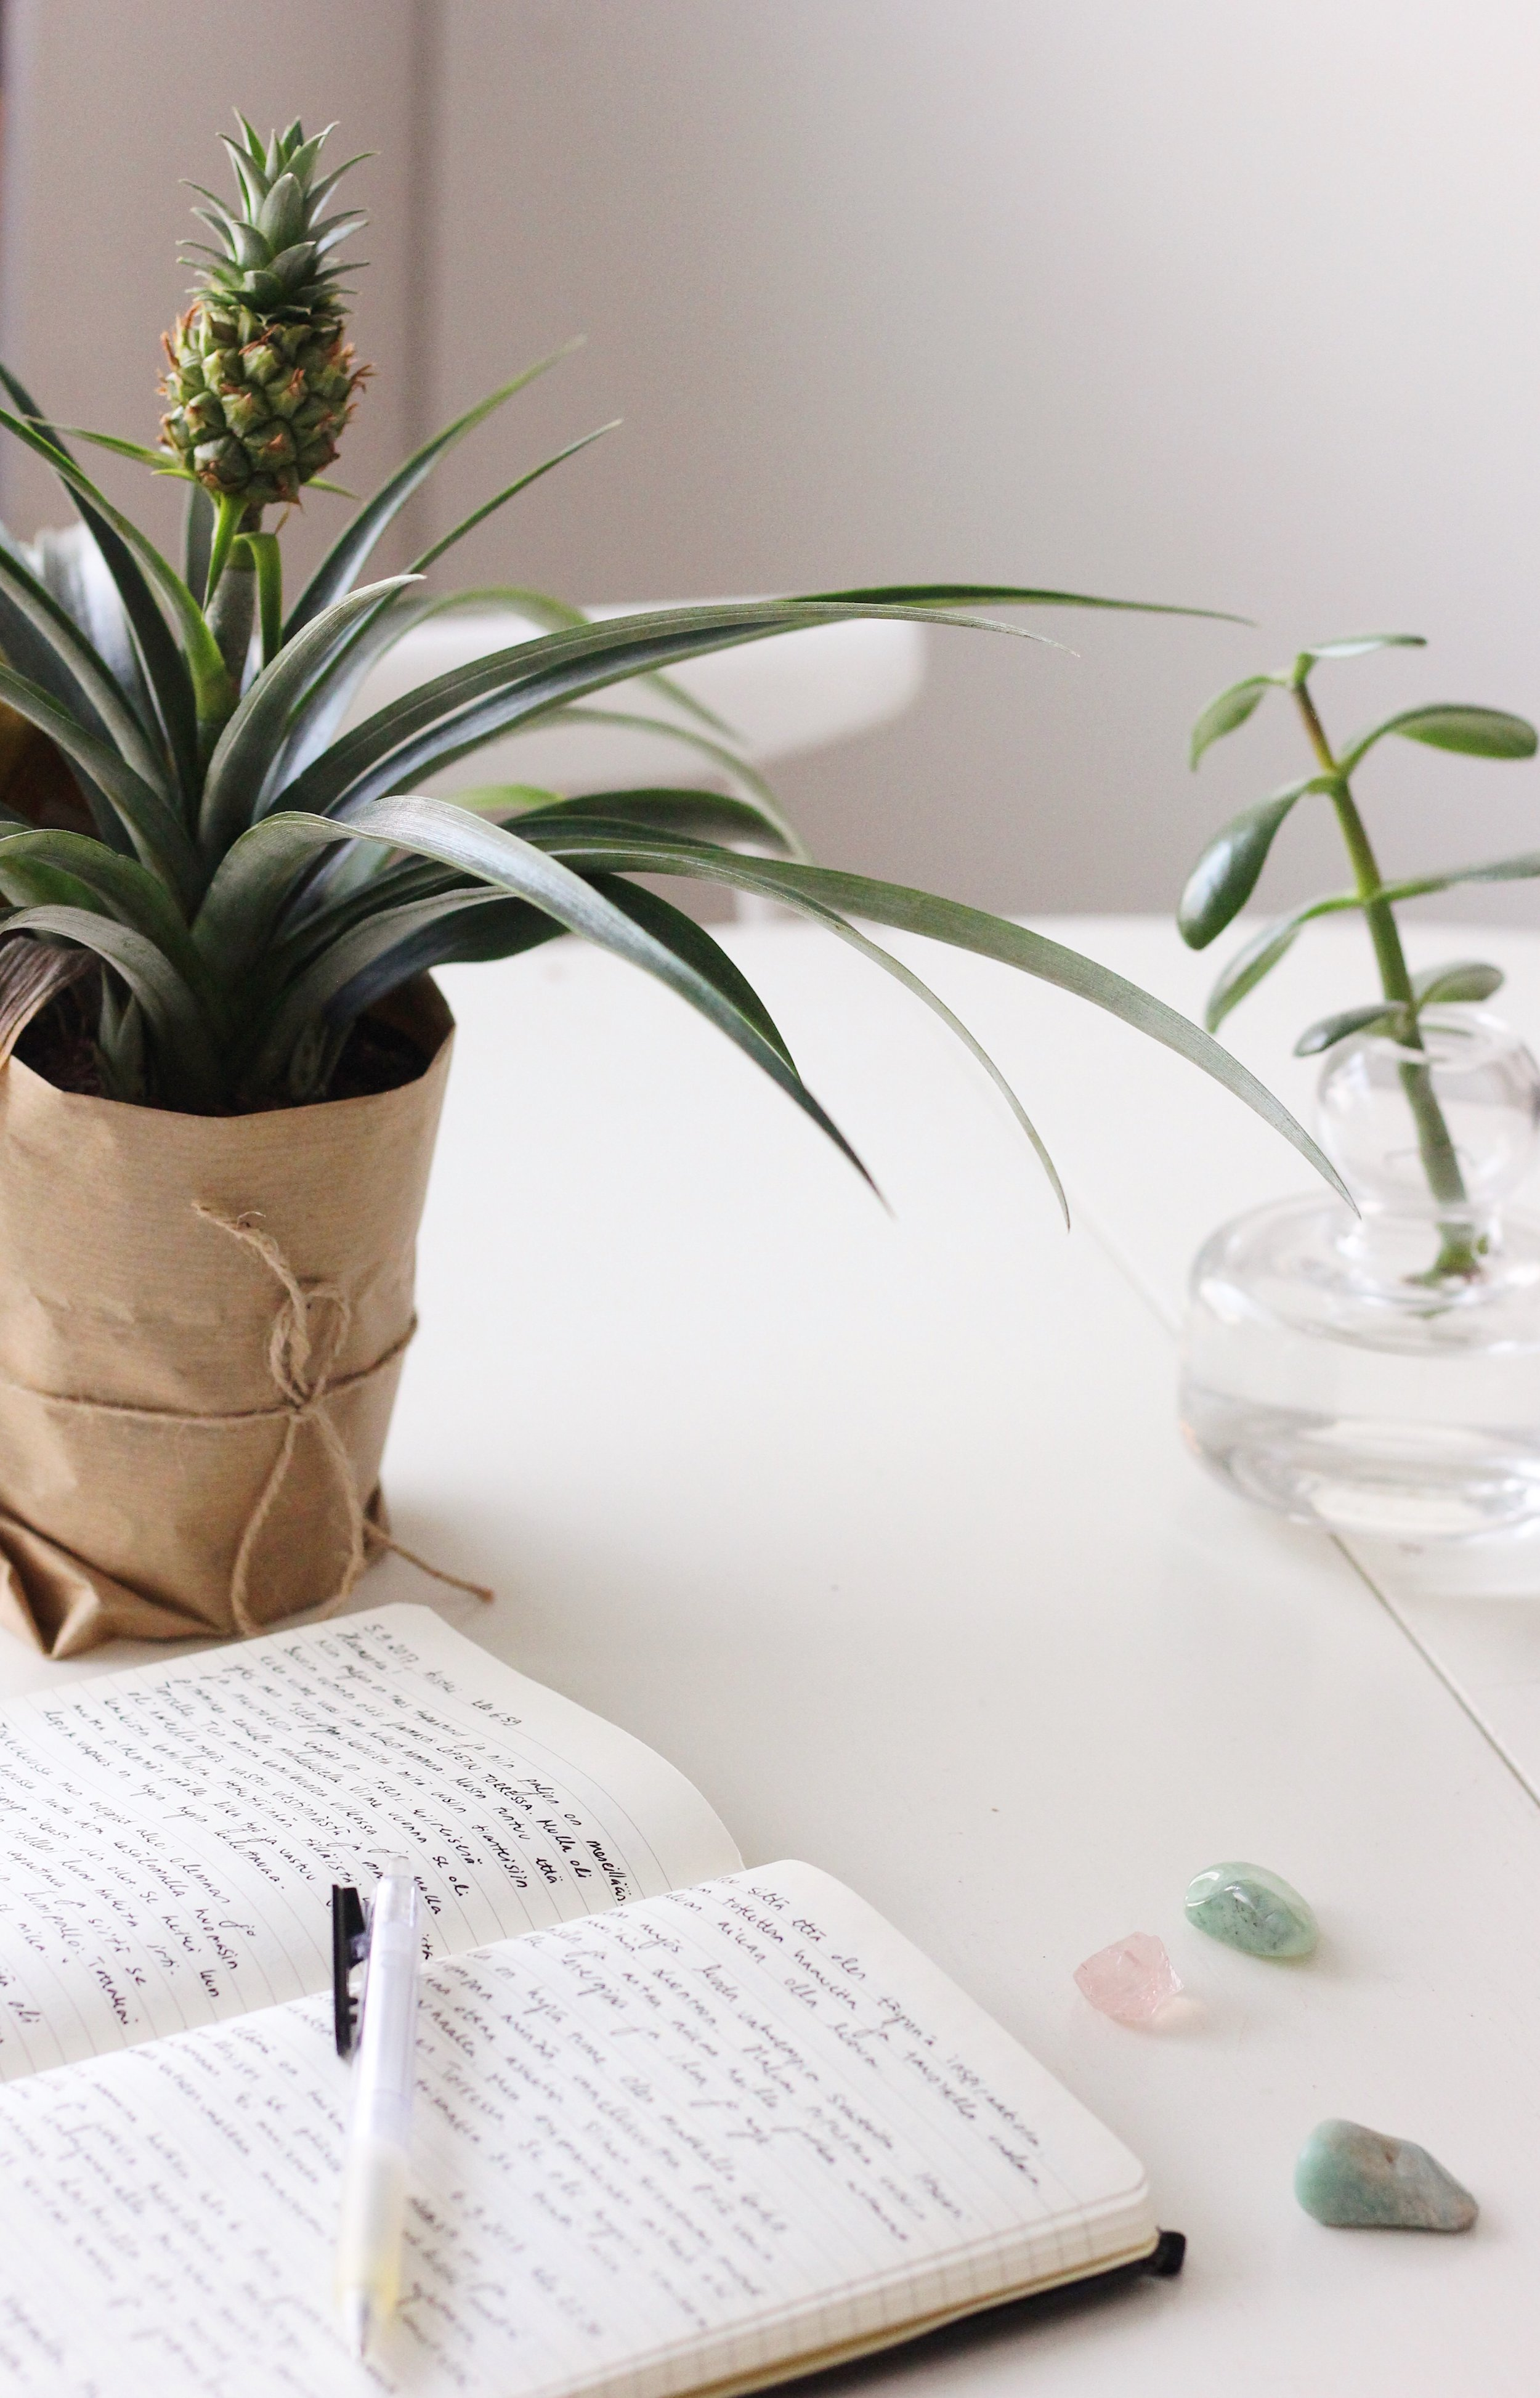 journaling, pineapple plants and crystals